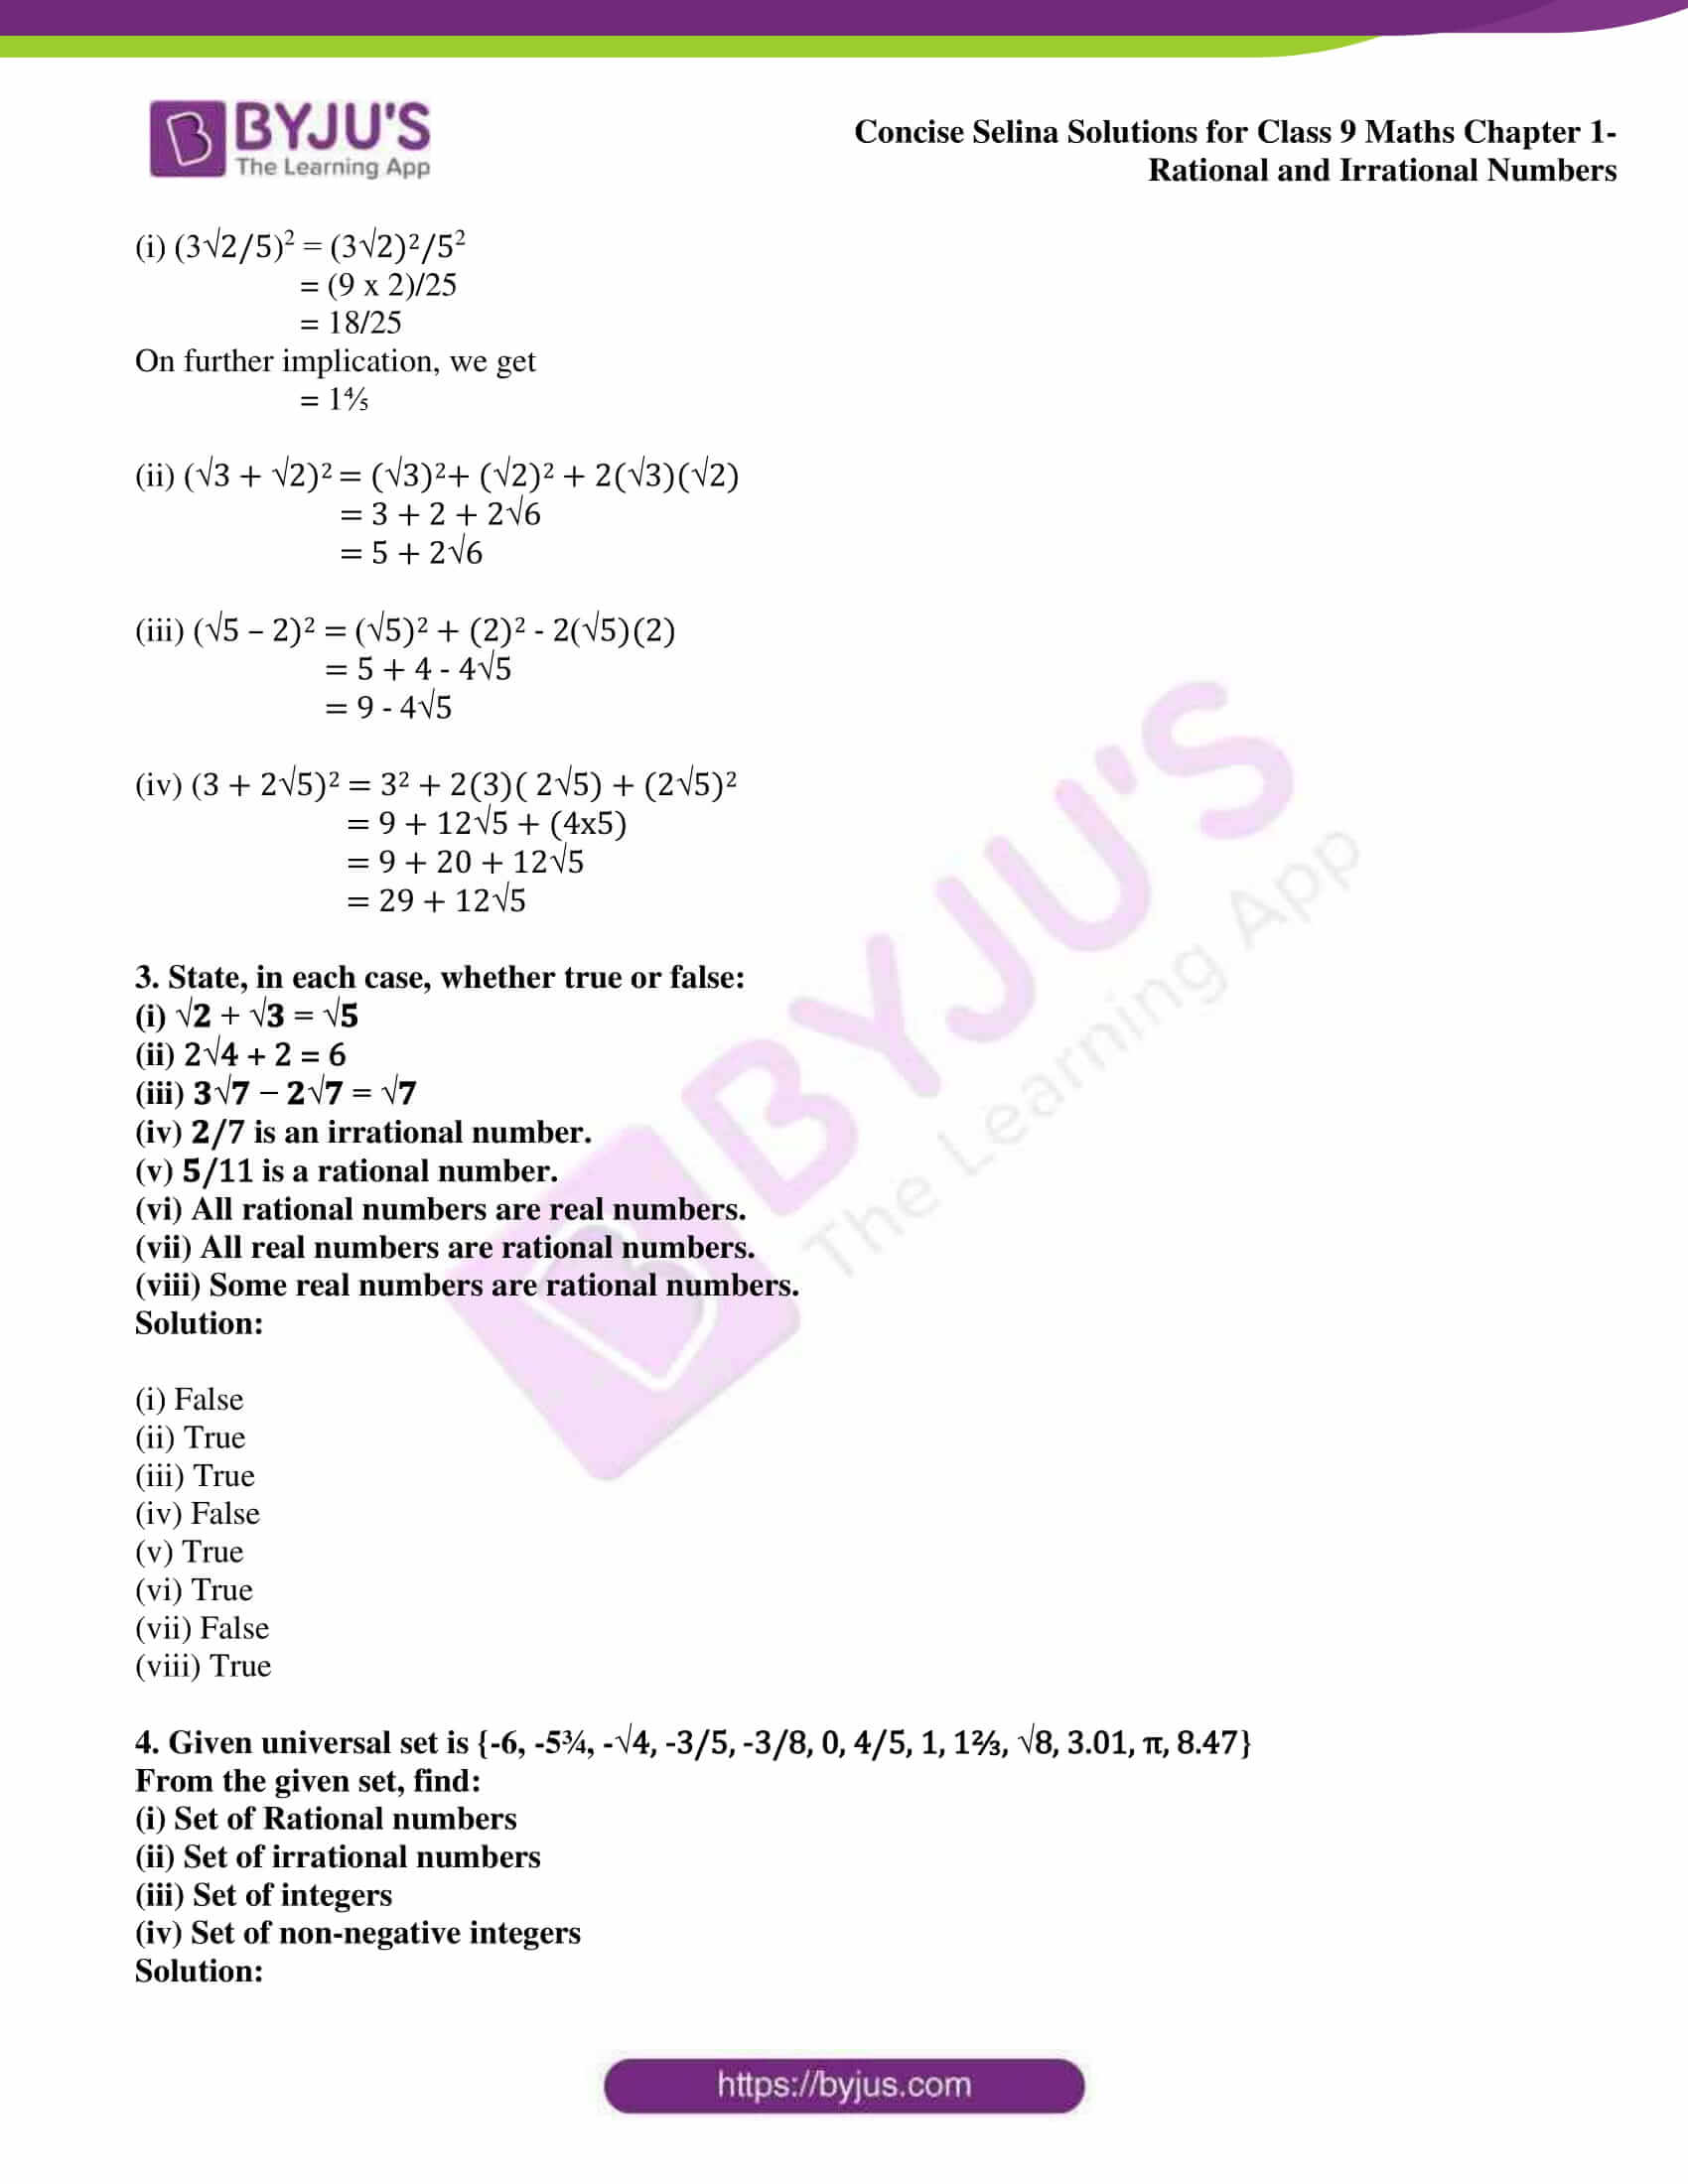 icse class 9 maths may13 selina solutions chapter 1 rational and irrational numbers 06